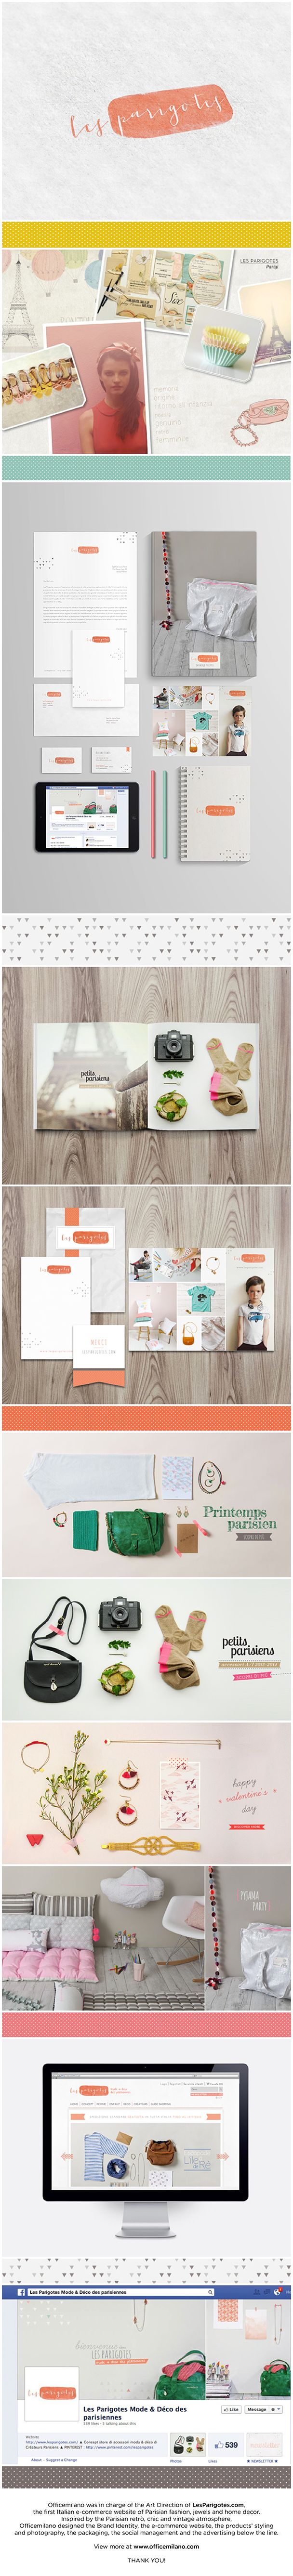 Les Parigotes Brand Identity #brochure #e-commerce #website #styling #photography #art direction by Officemilano